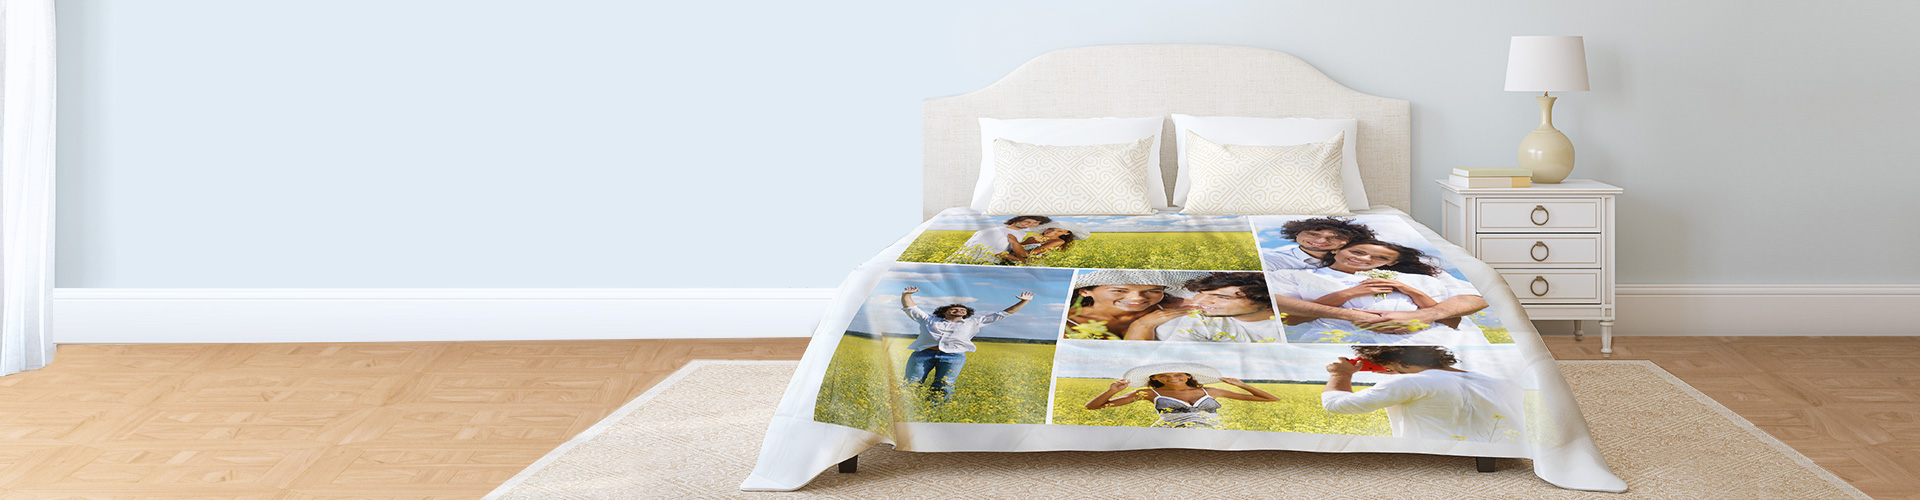 Personalised Memory Blanket Soft Fleece Printed With Name /& DOB Your Own Photos